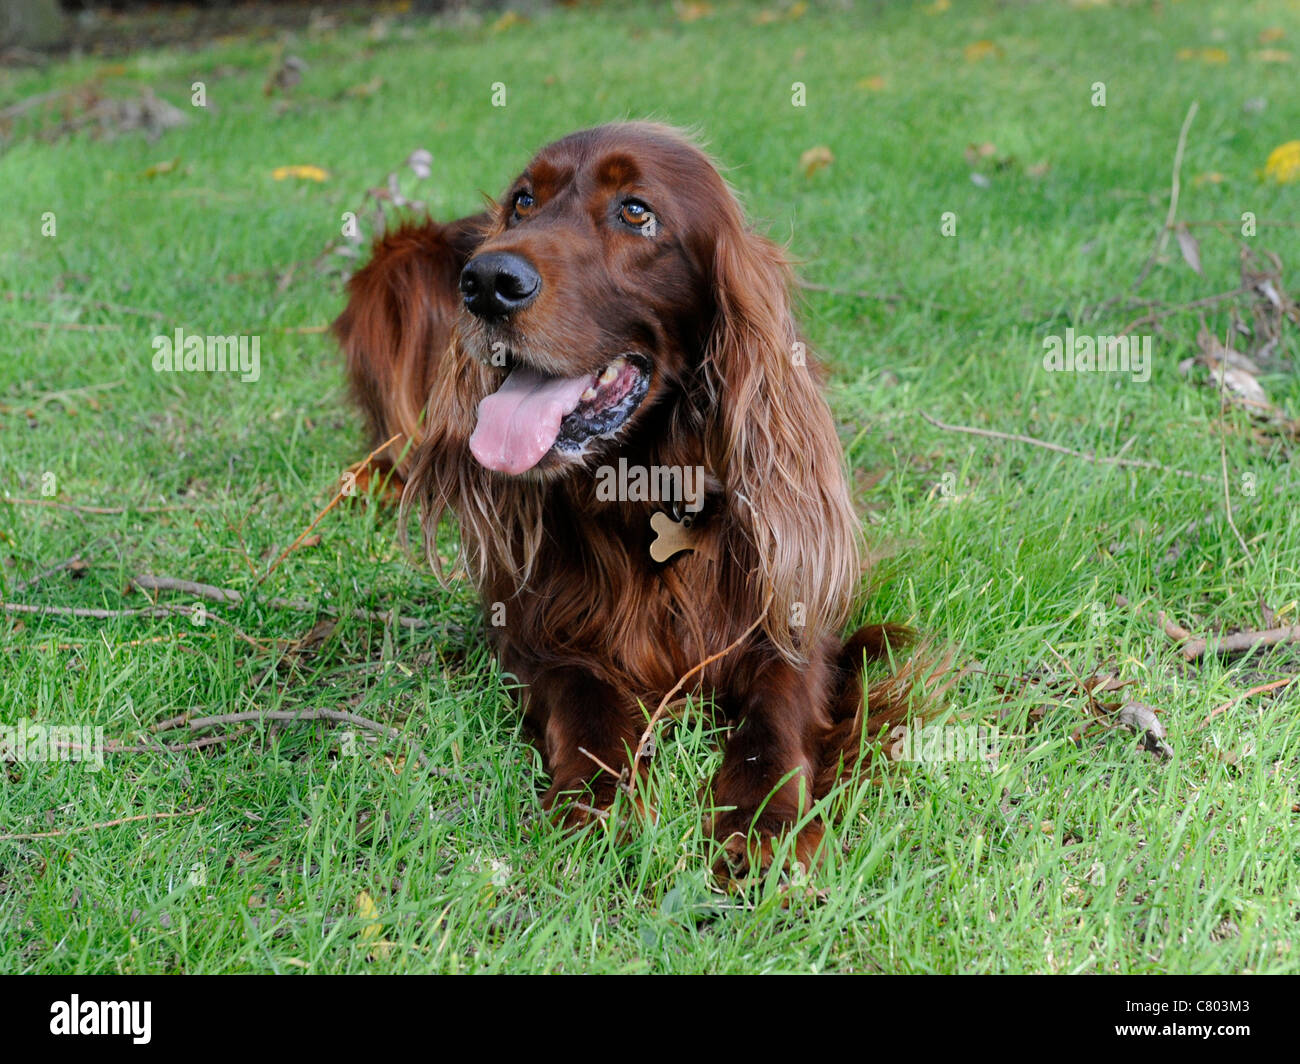 An English red setter sitting on the grass being obedient - Stock Image